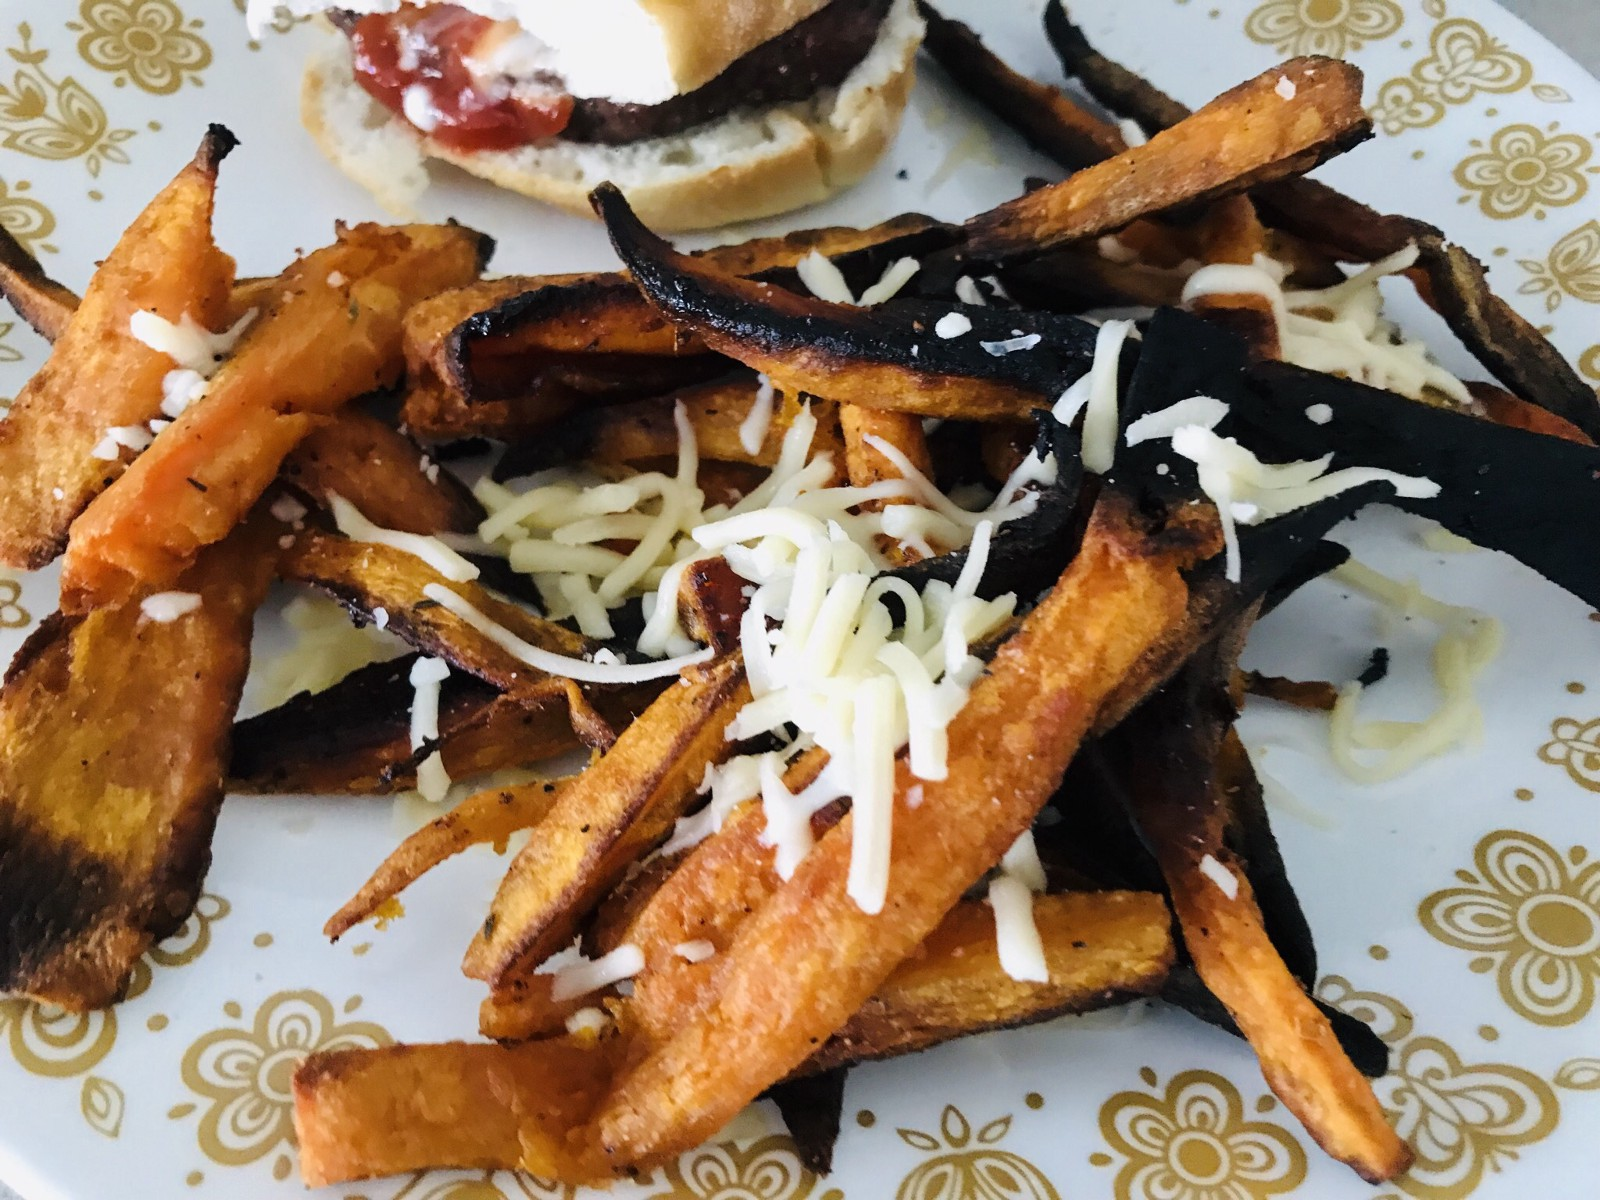 Meals to go with sweet potato fries